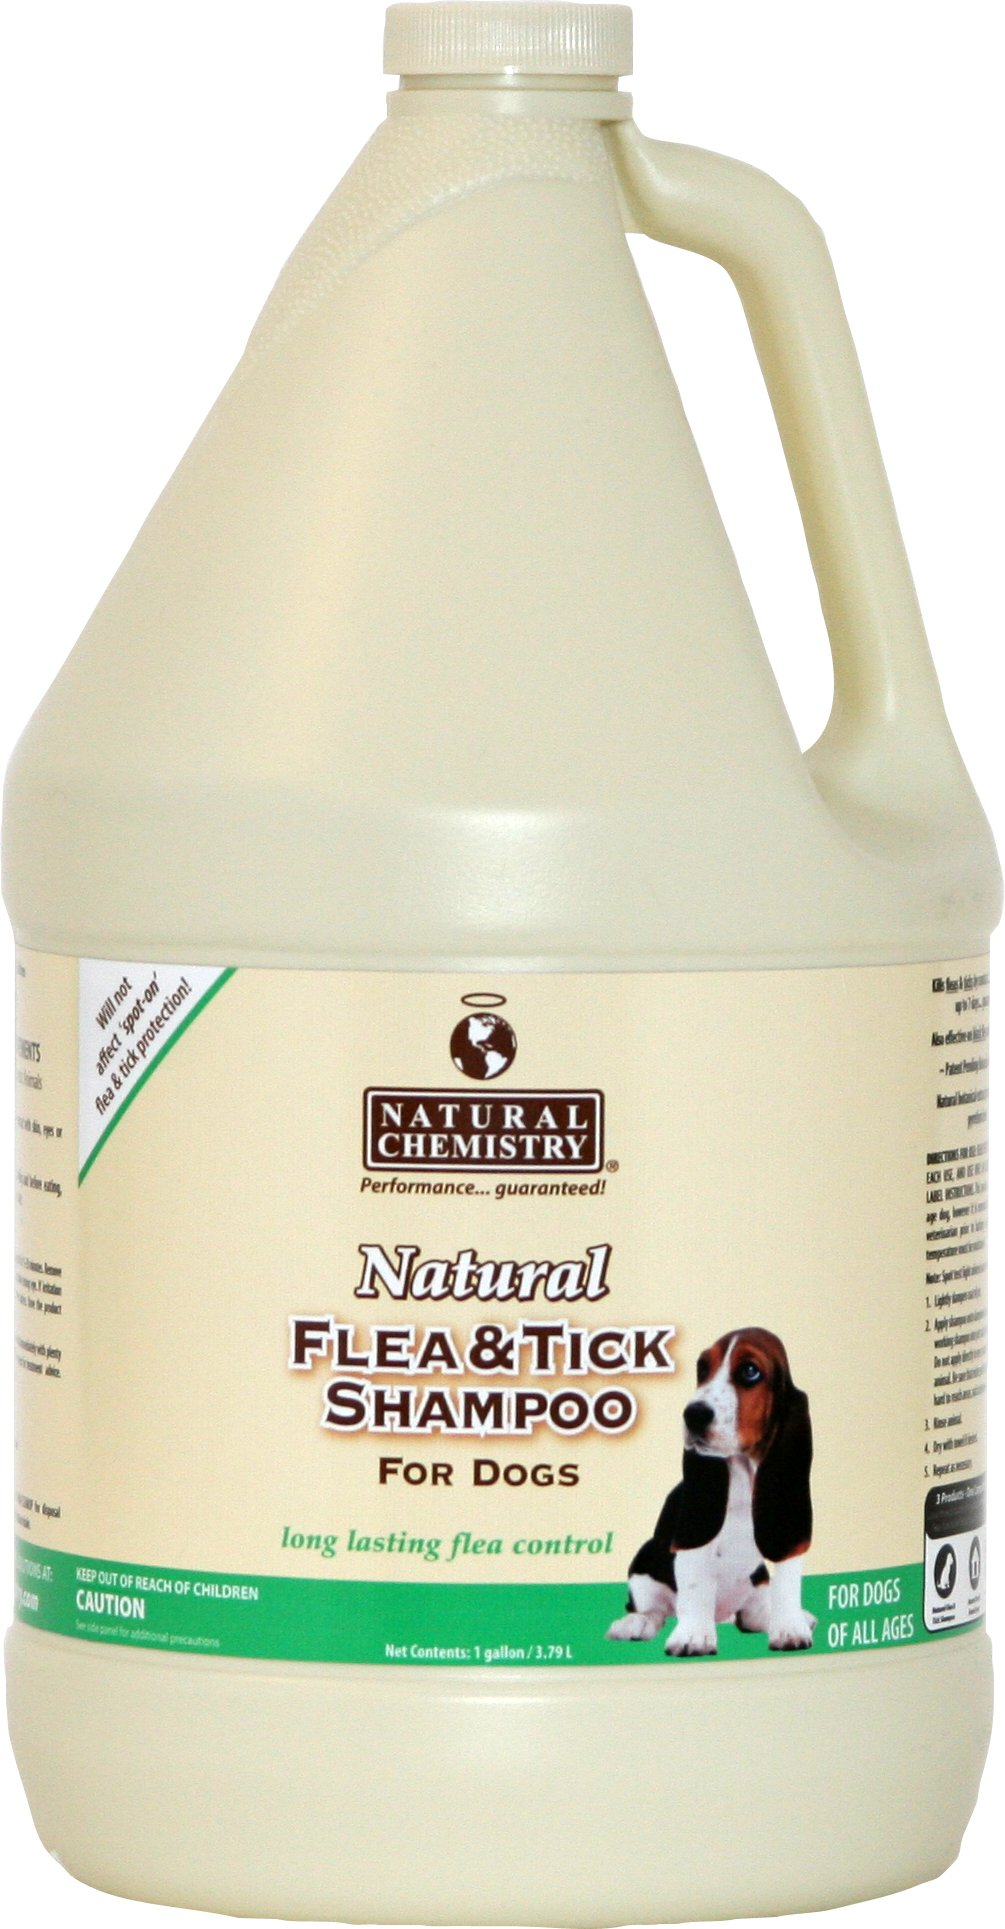 Natural Chemistry ZT1100 91 Natural Flea and Tick Shampoo for Dogs, 1-Gallon by Natural Chemistry